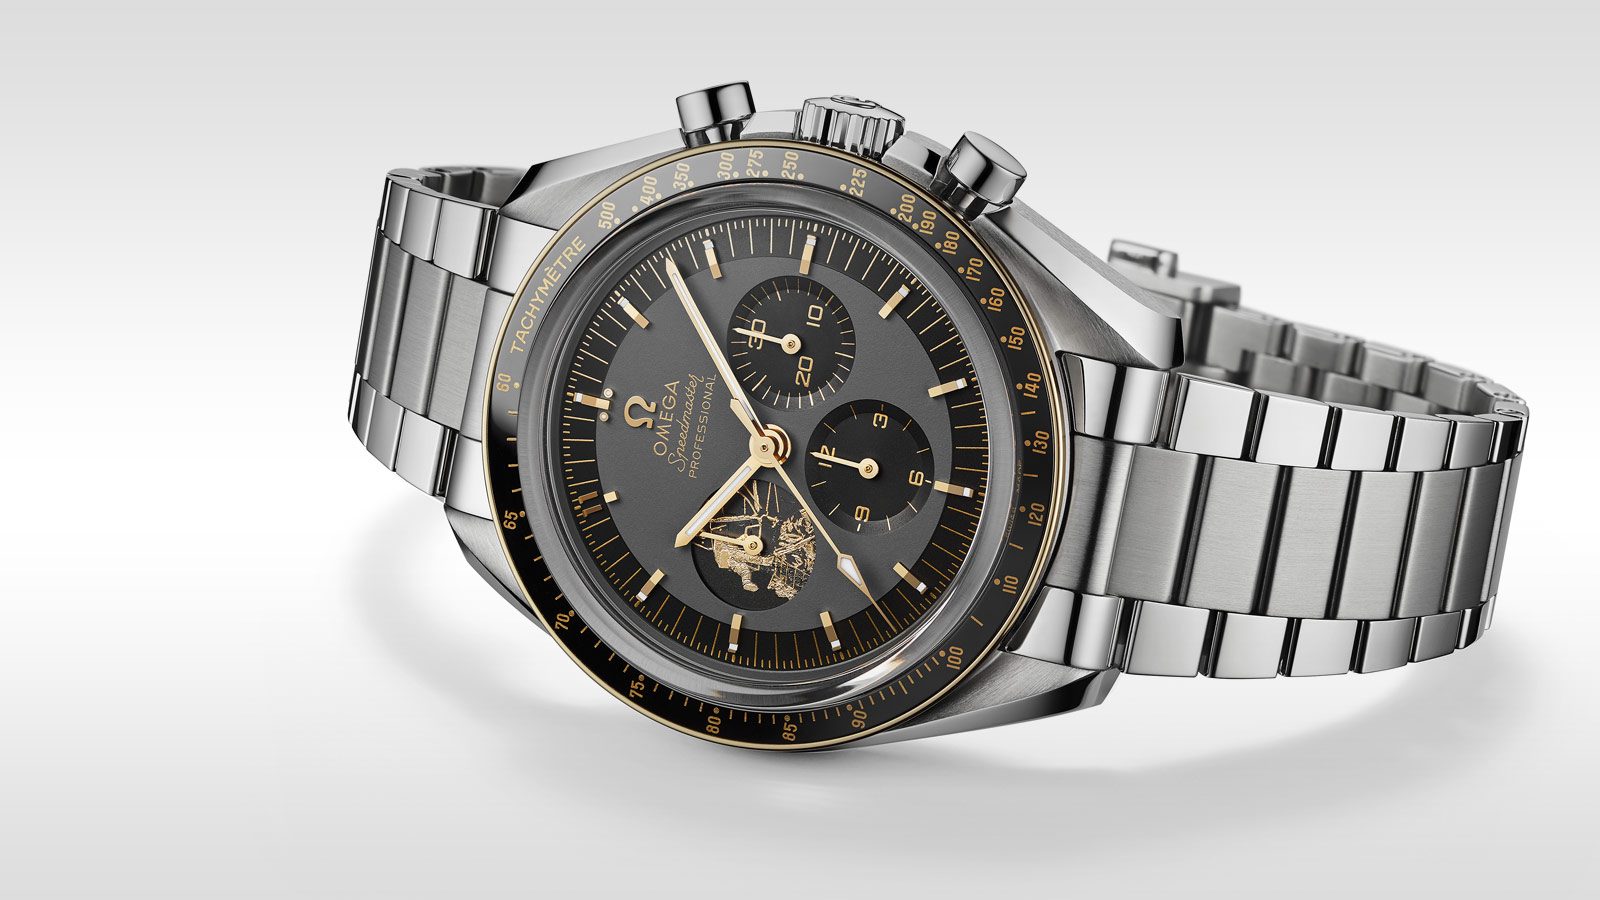 Speedmaster Moonwatch Moonwatch Anniversary Limited Series - 310.20.42.50.01.001 - View 3